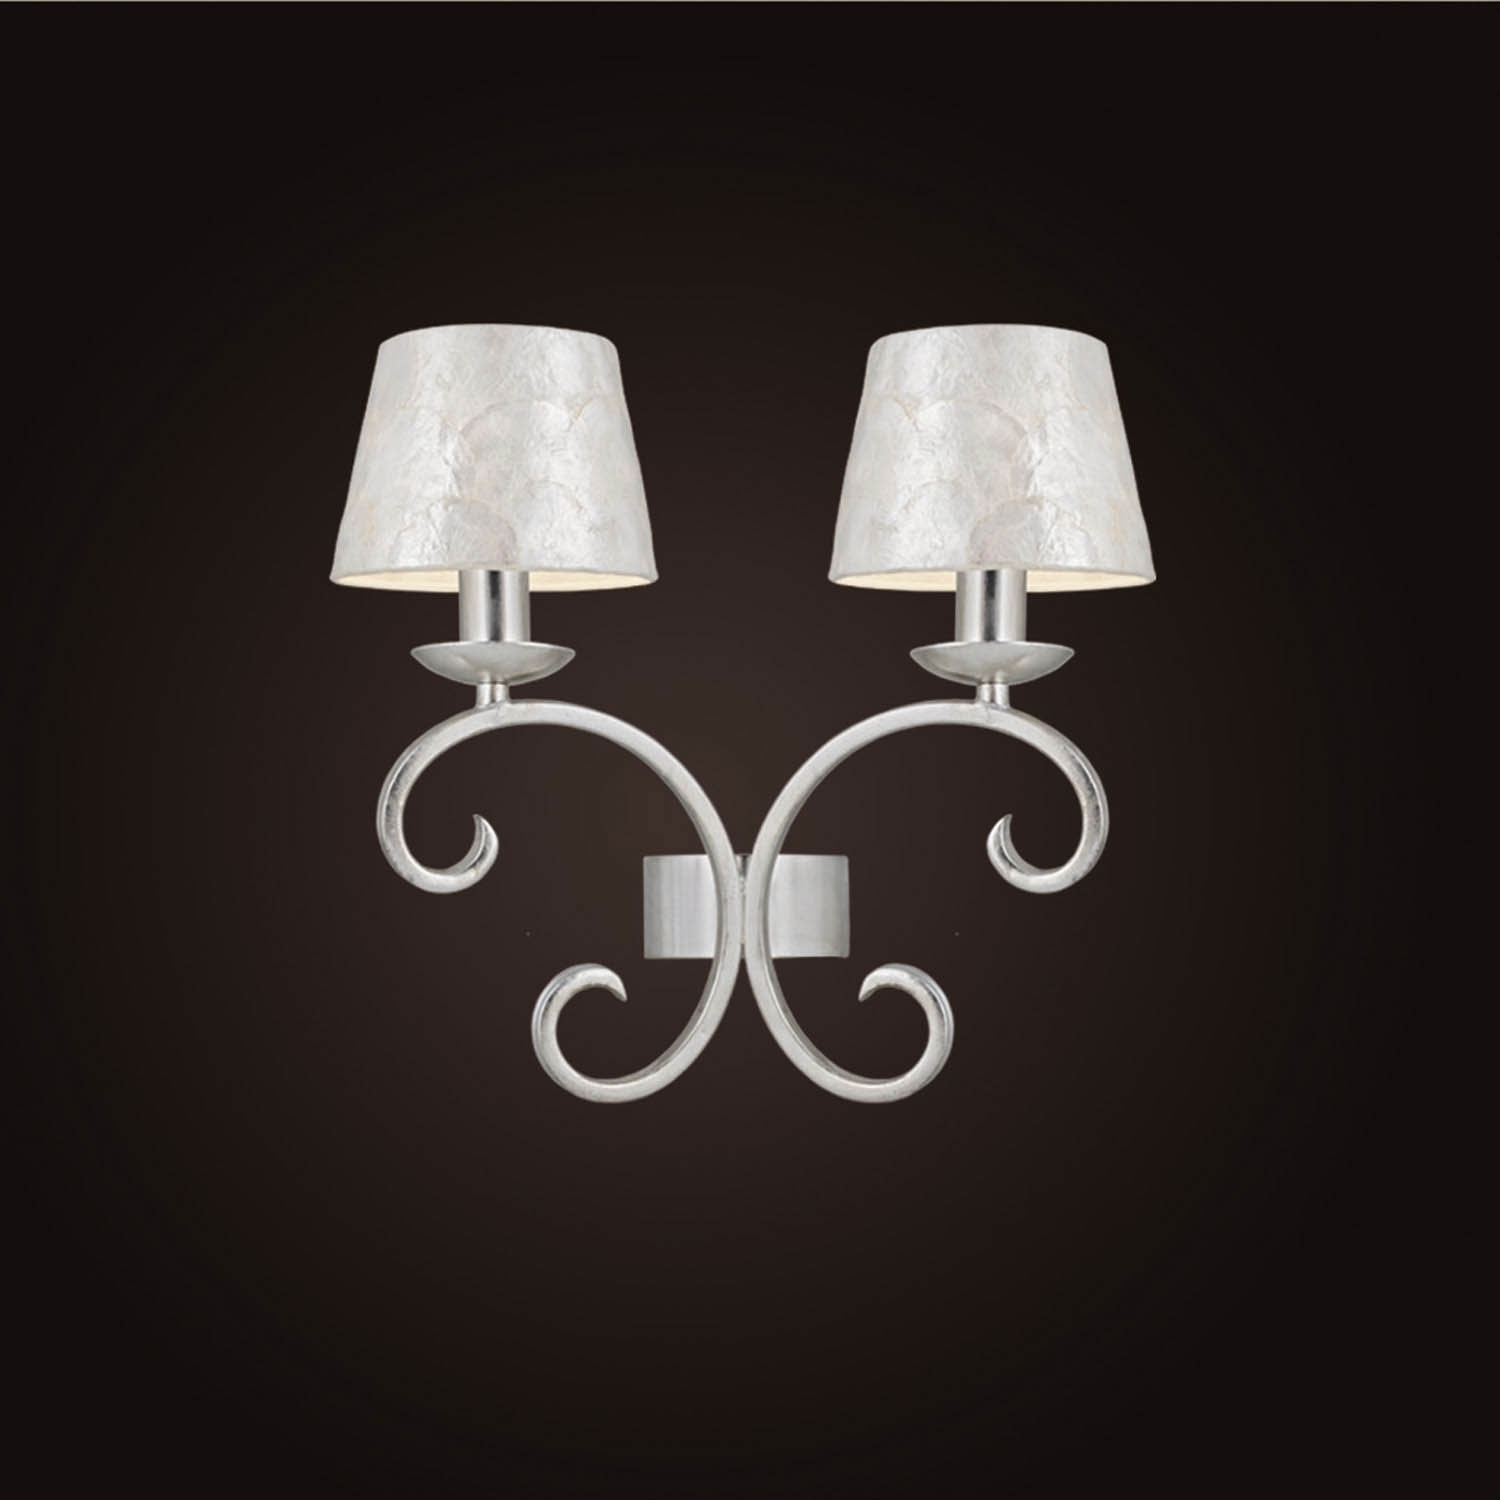 Fant stico luces pared adorno ideas de decoraci n de for Luces de pared interior